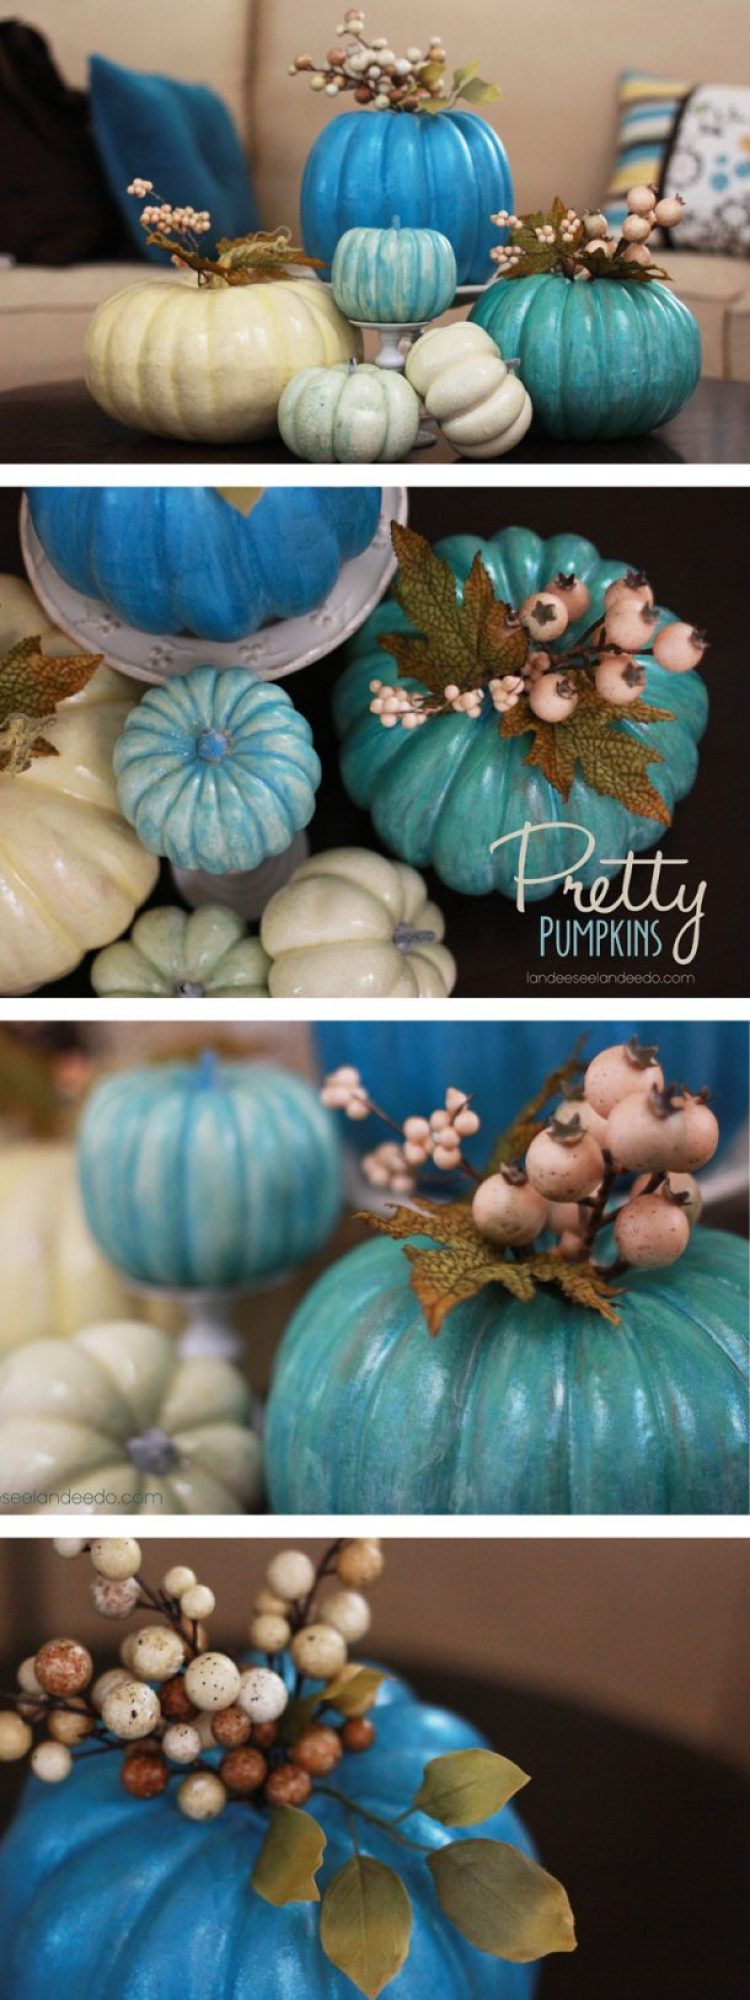 Customize your fall decorations with painted pumpkins!